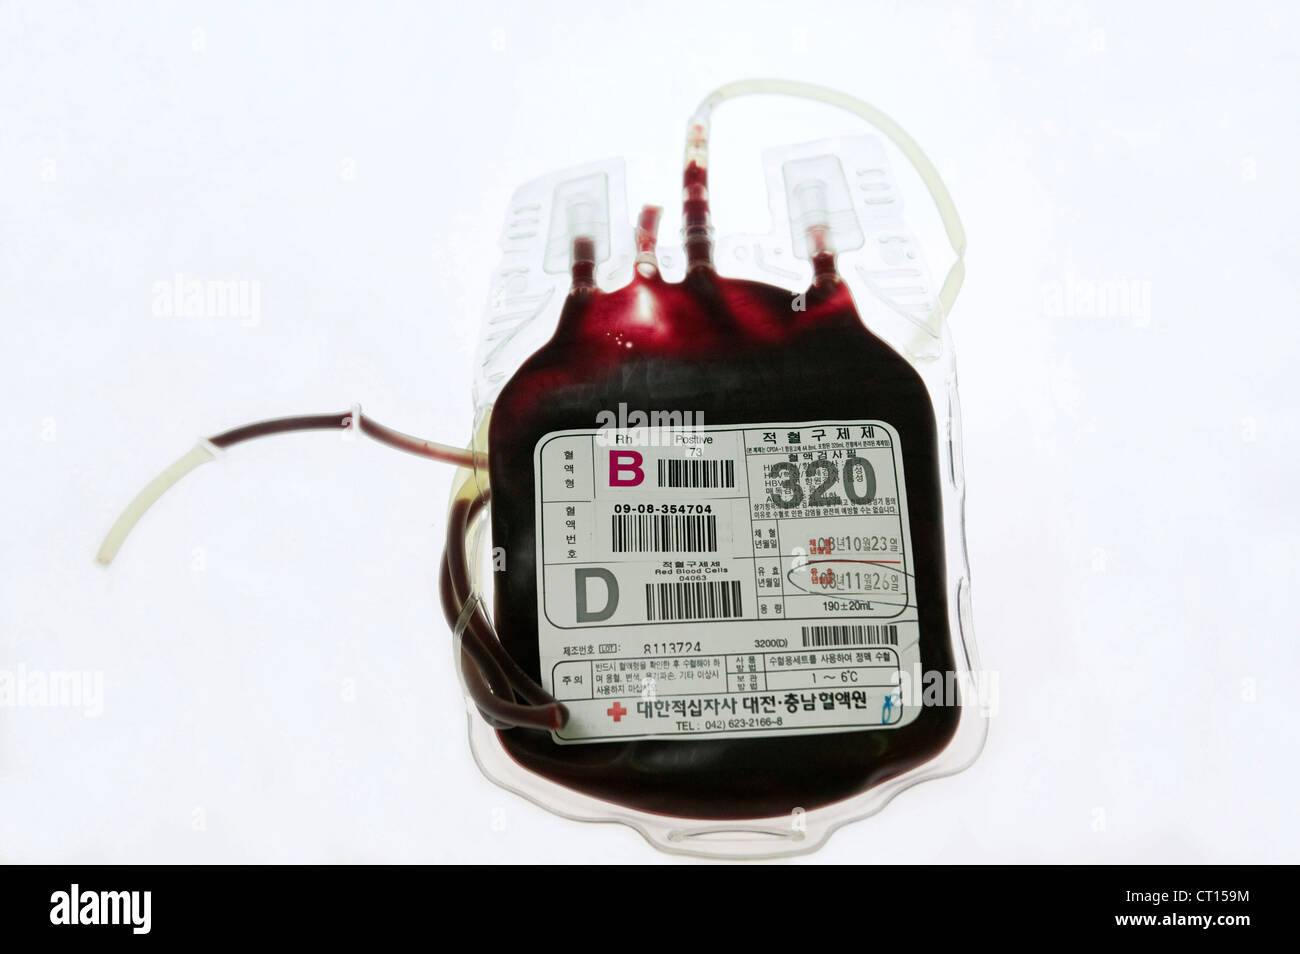 Still life of a blood bag. - Stock Image